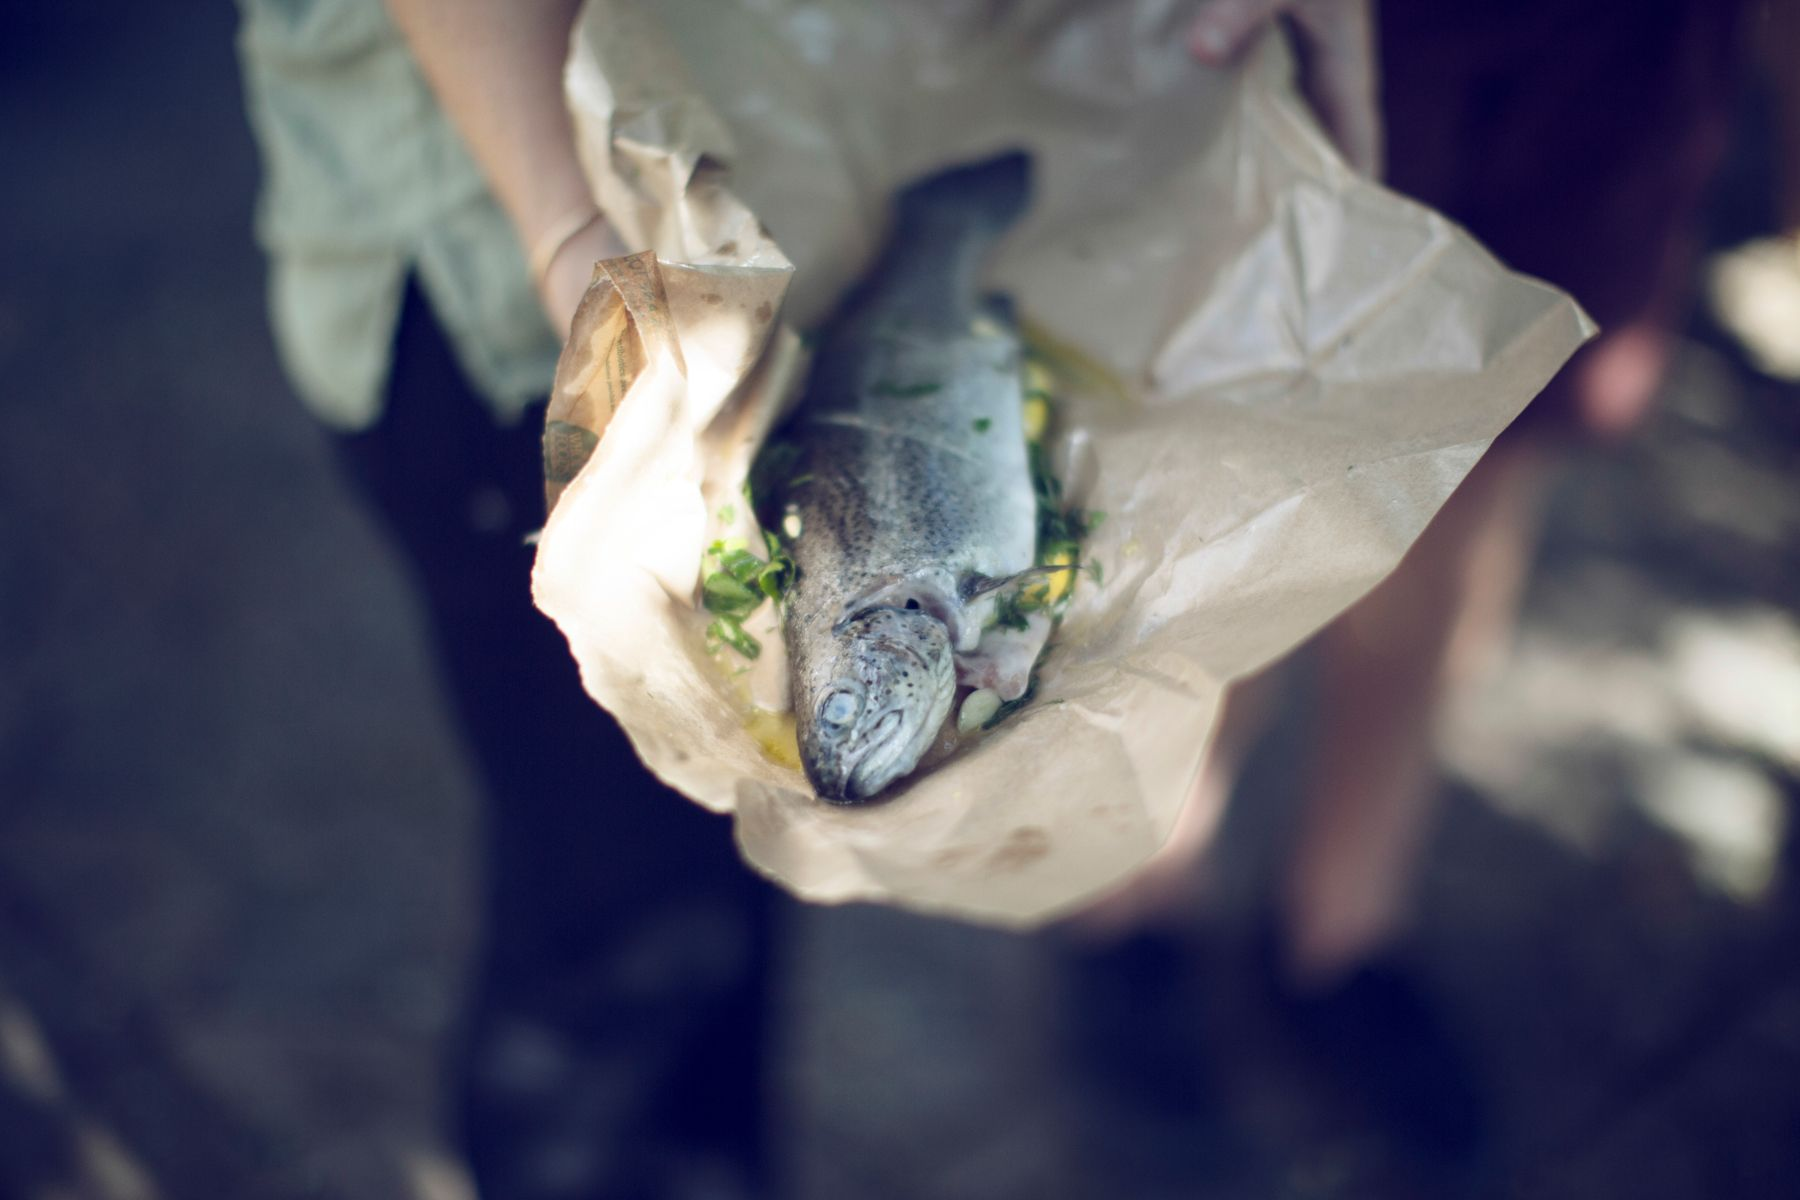 Recipes: Grilled Whole Fish & Cherry Tomatoes Kinfolk